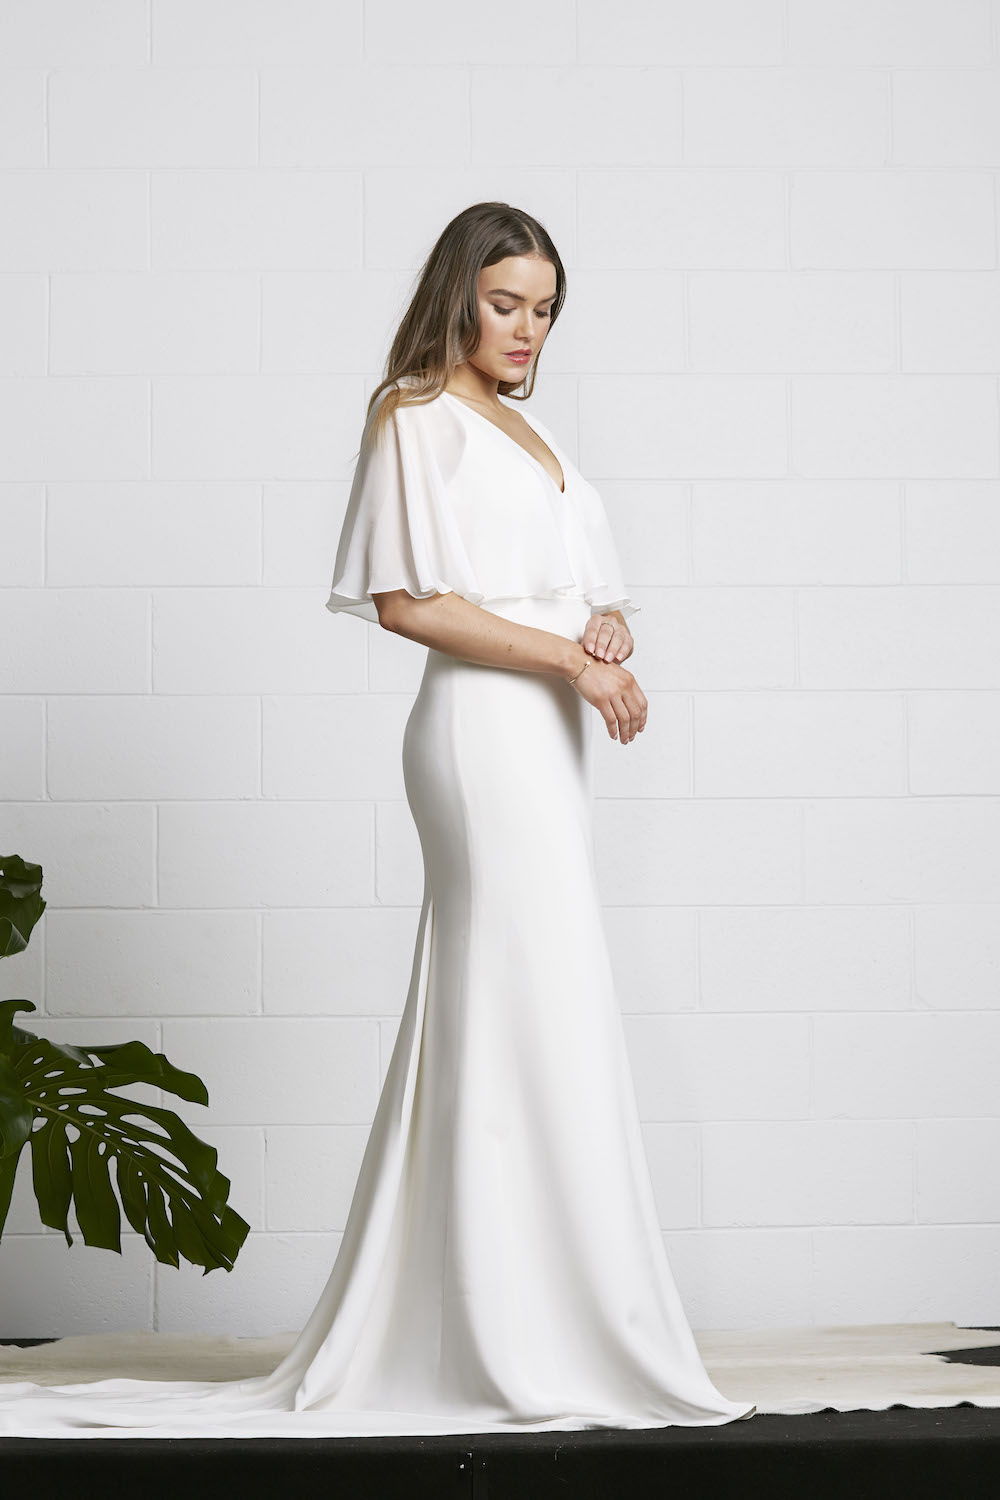 The Admire Bridal Dress by Fiona Claire as featured on LOVE FIND CO.